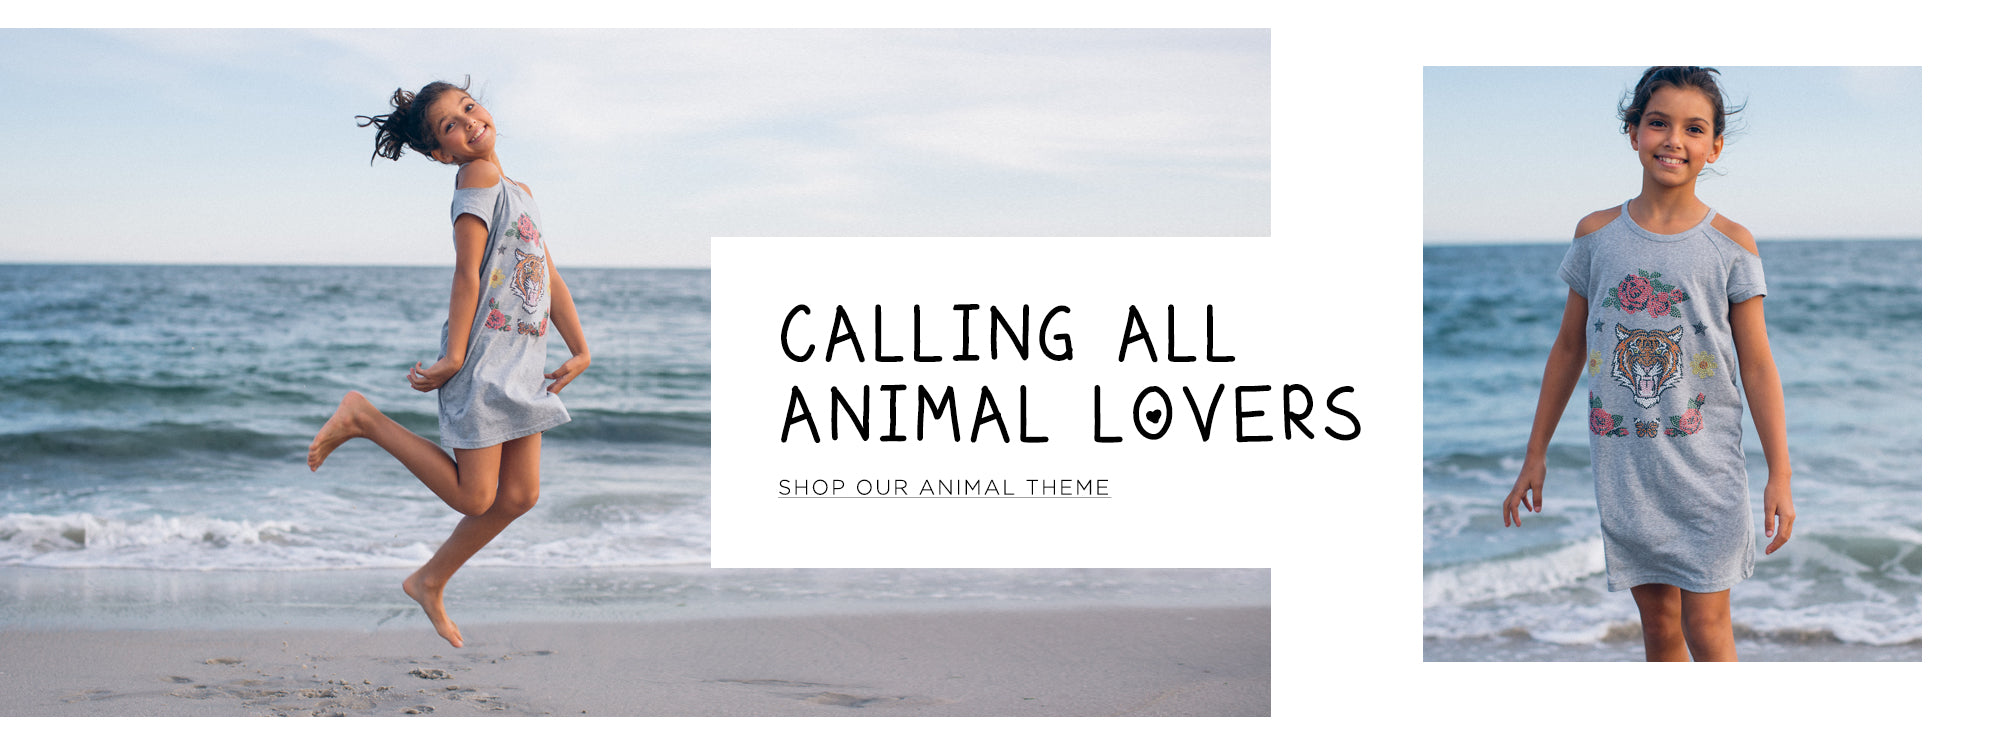 Calling all animal lovers. Shop our animal theme.